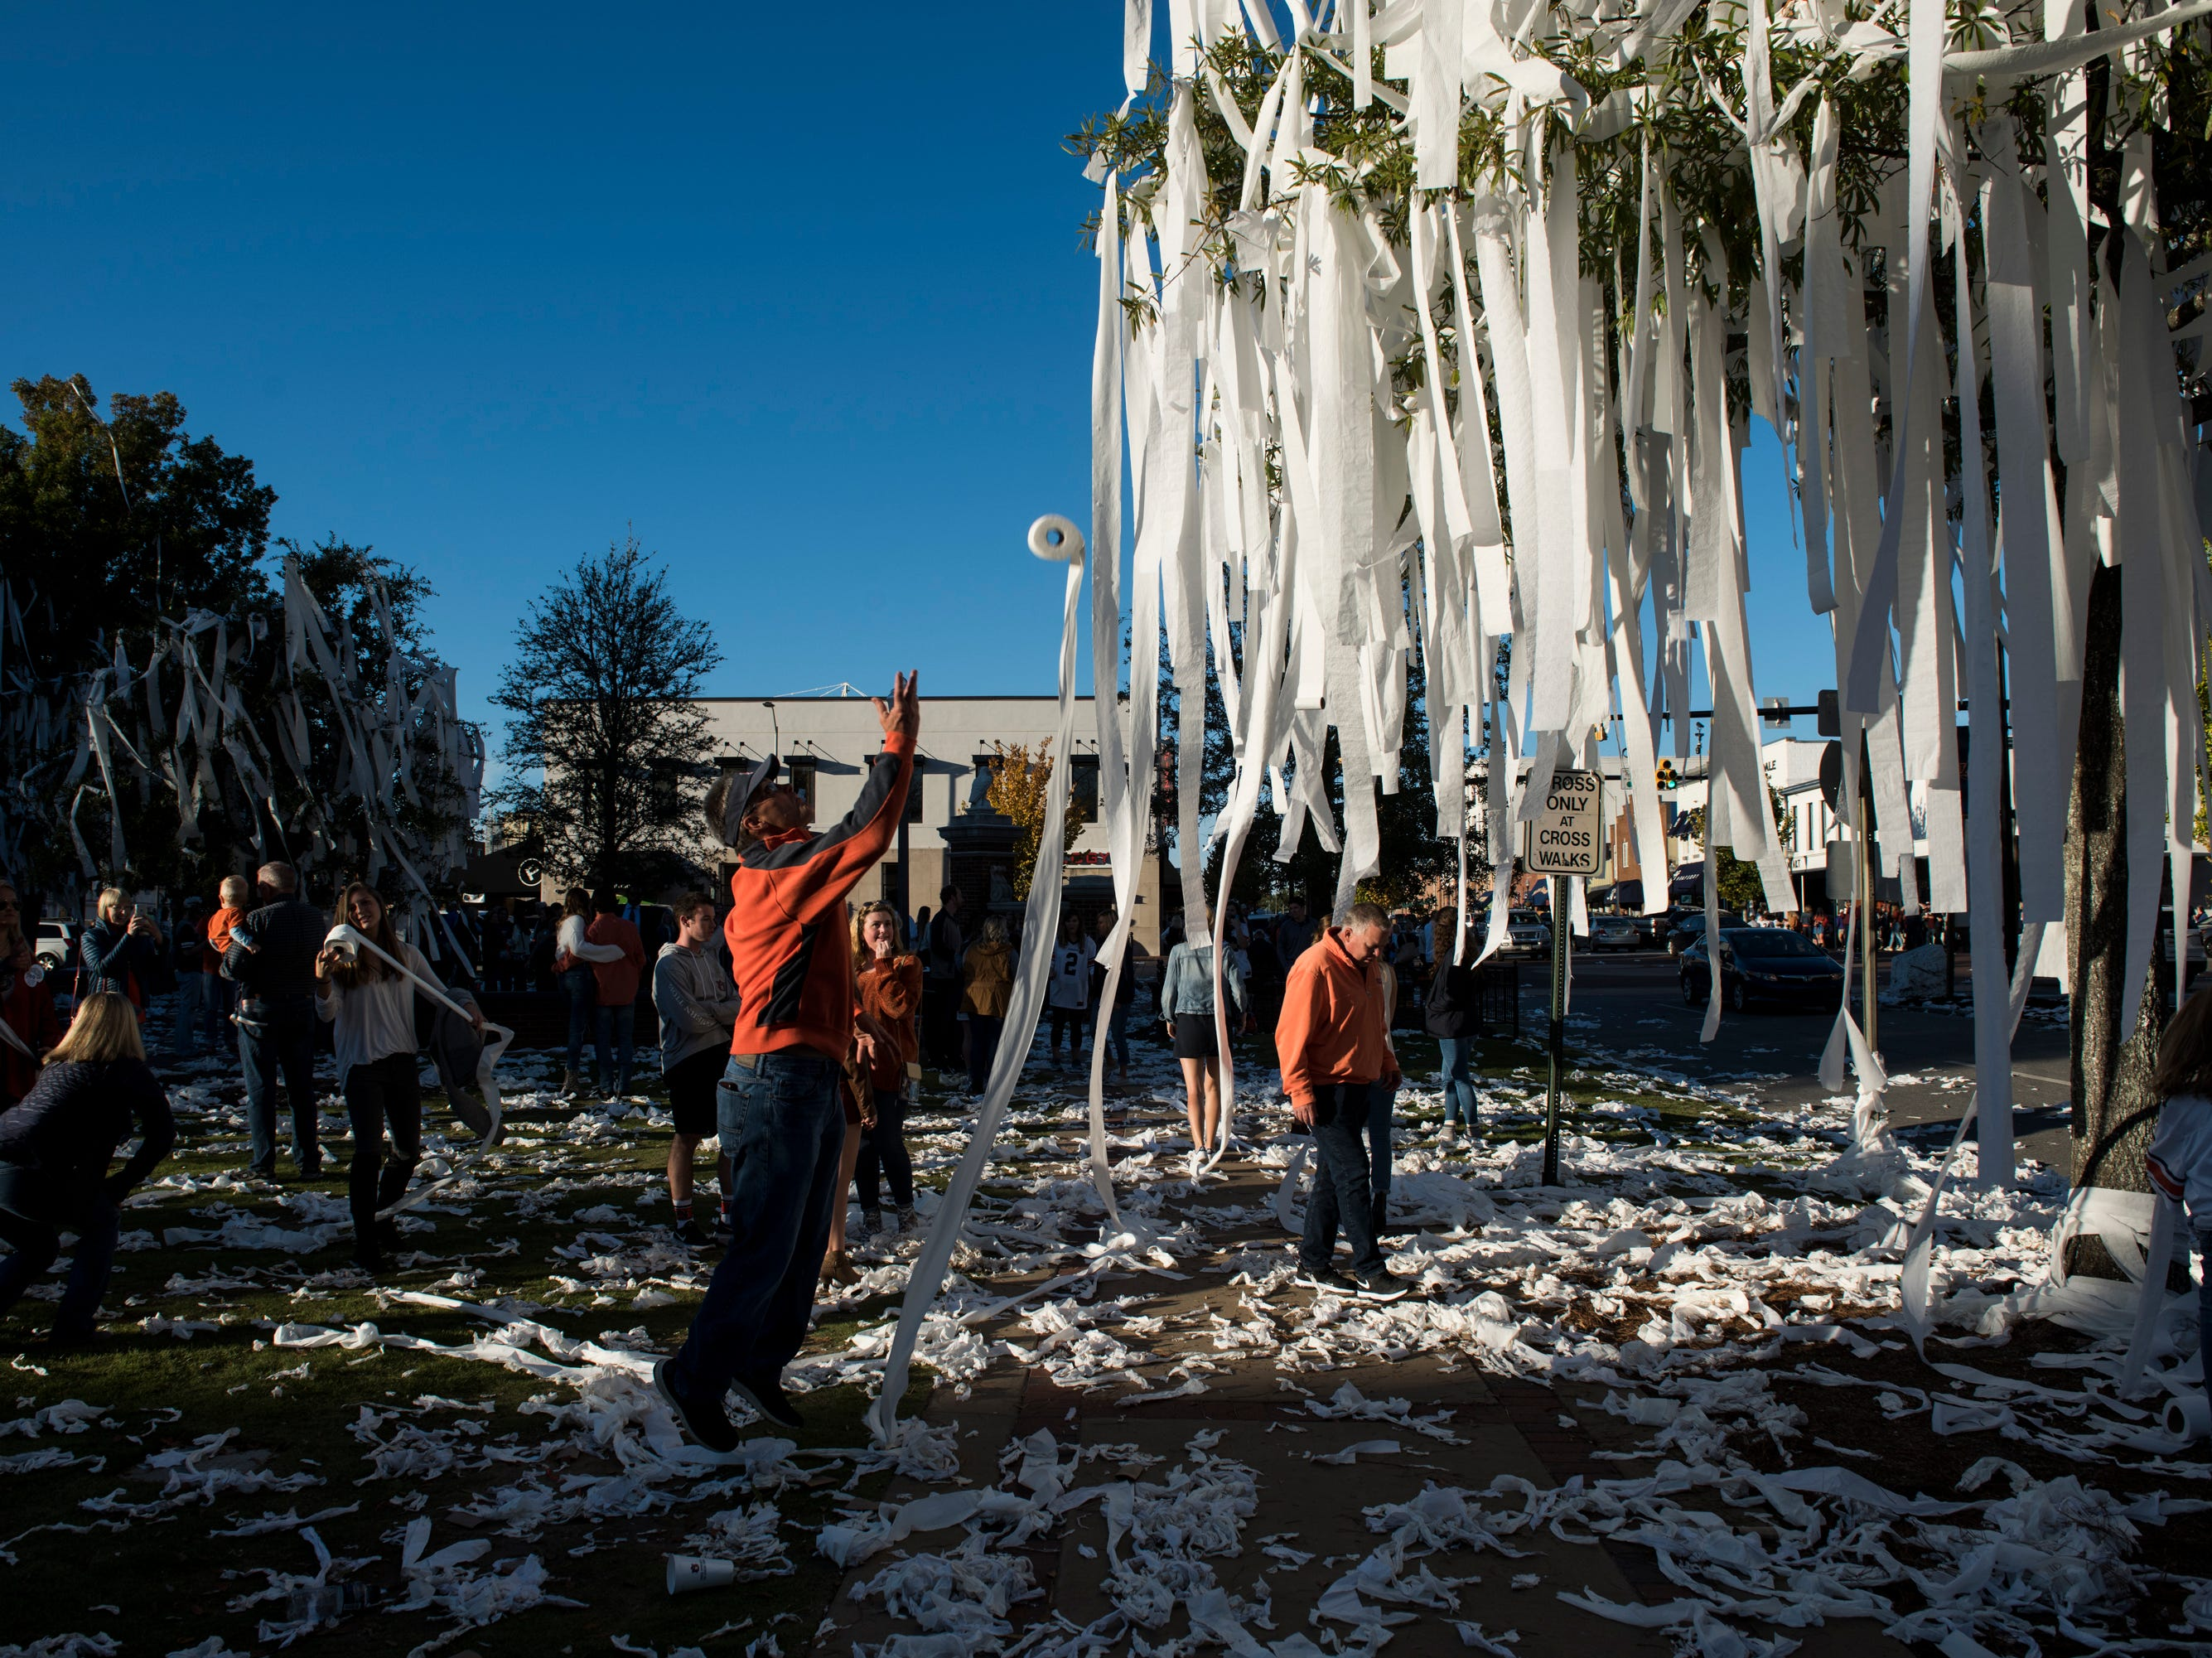 Auburn fans 'roll' the oak trees at Toomer's Corner after Auburn defeated Texas A&M 28-24 in Auburn, Ala. on Saturday, Nov. 3, 2018.